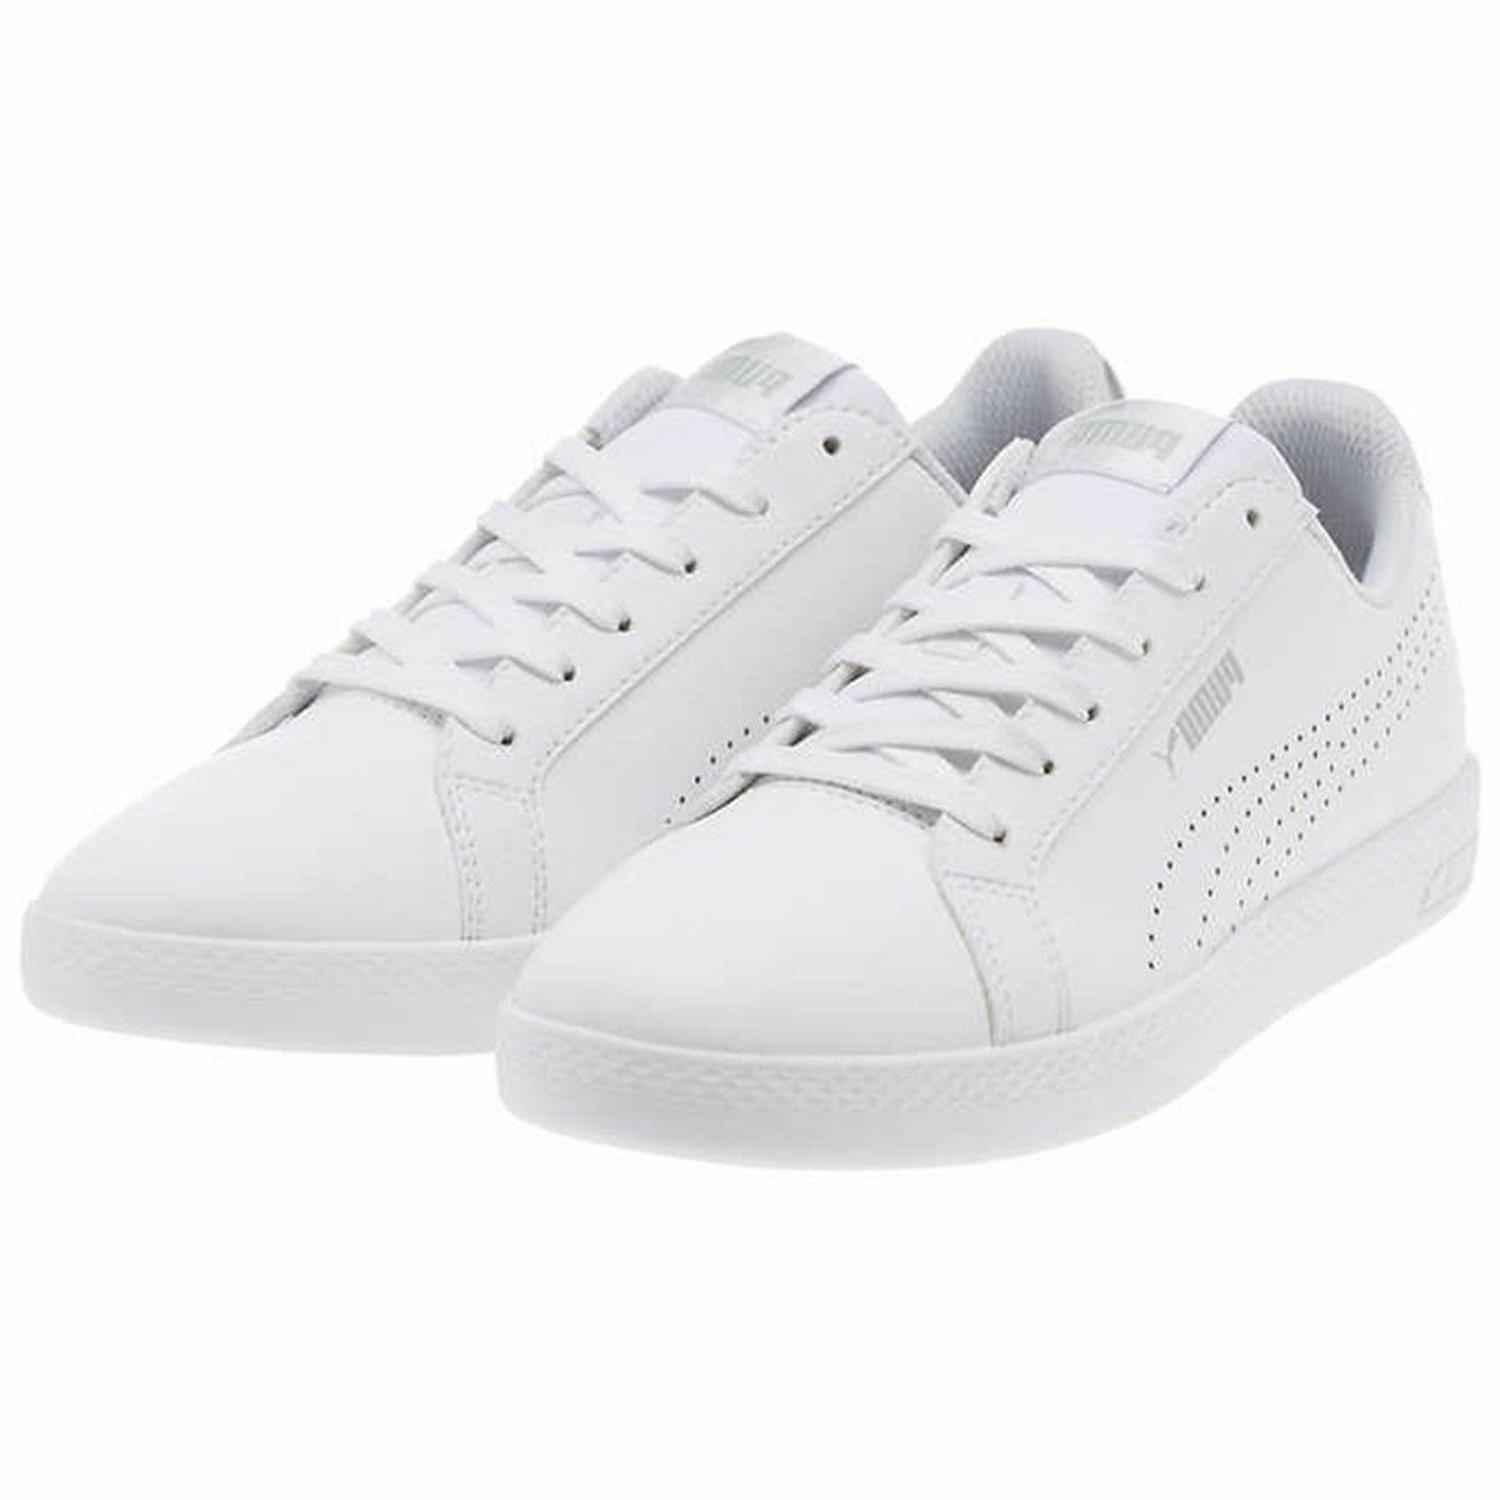 PUMA Smash Leather Metallic Shoes